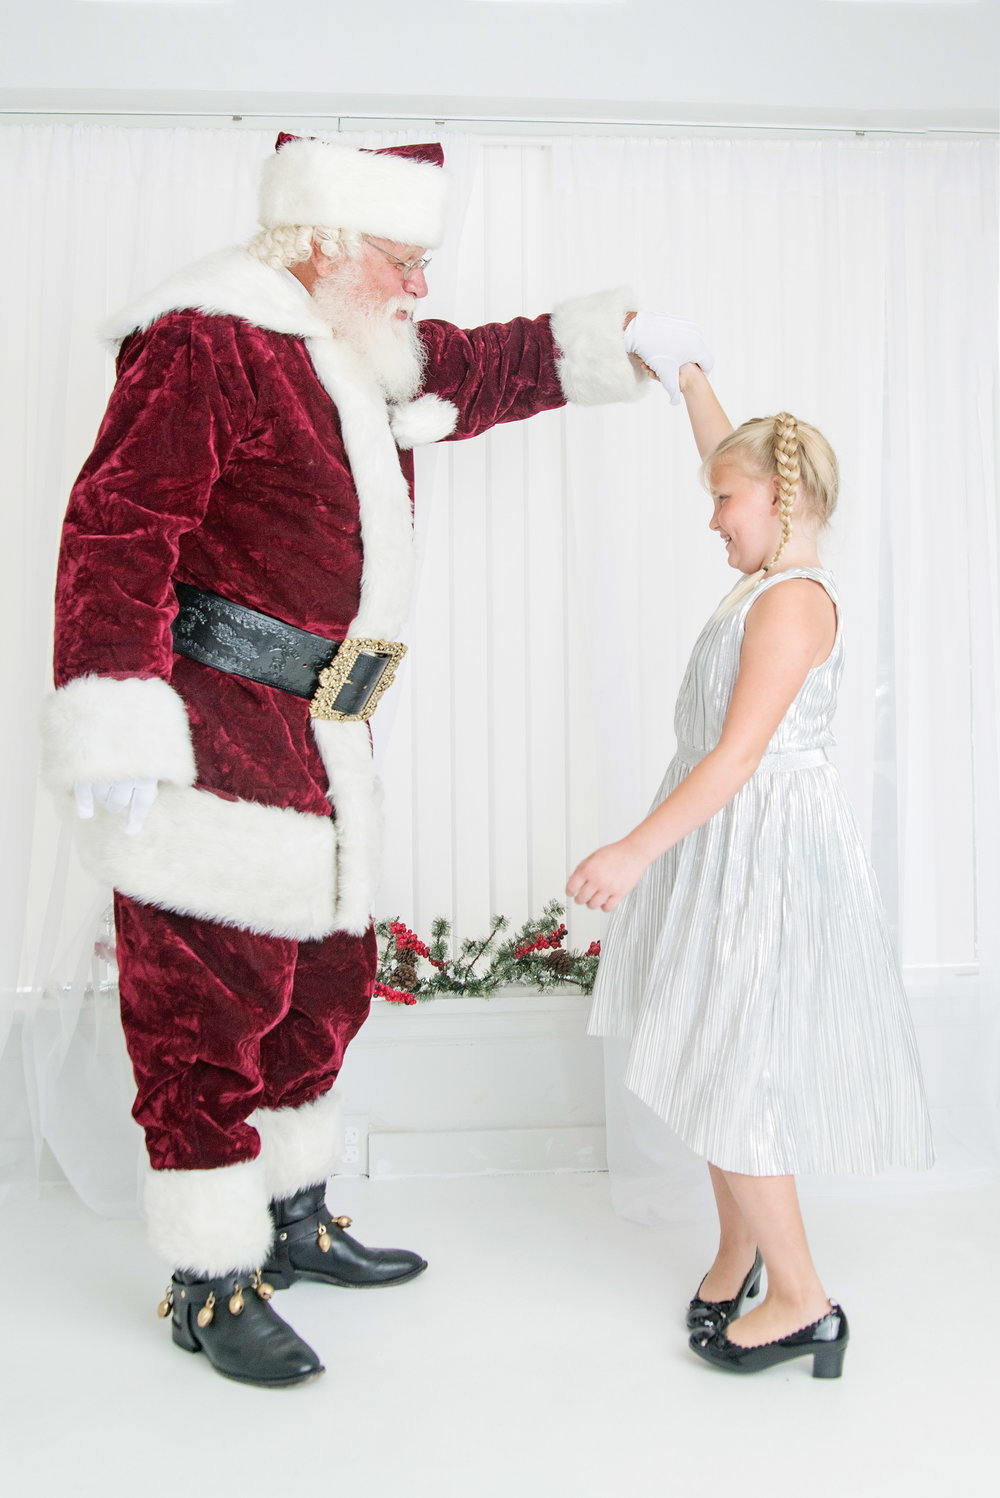 st-louis-photography-studio-sessions-with-santa-2018-santa-dancing-with-older-child.jpg